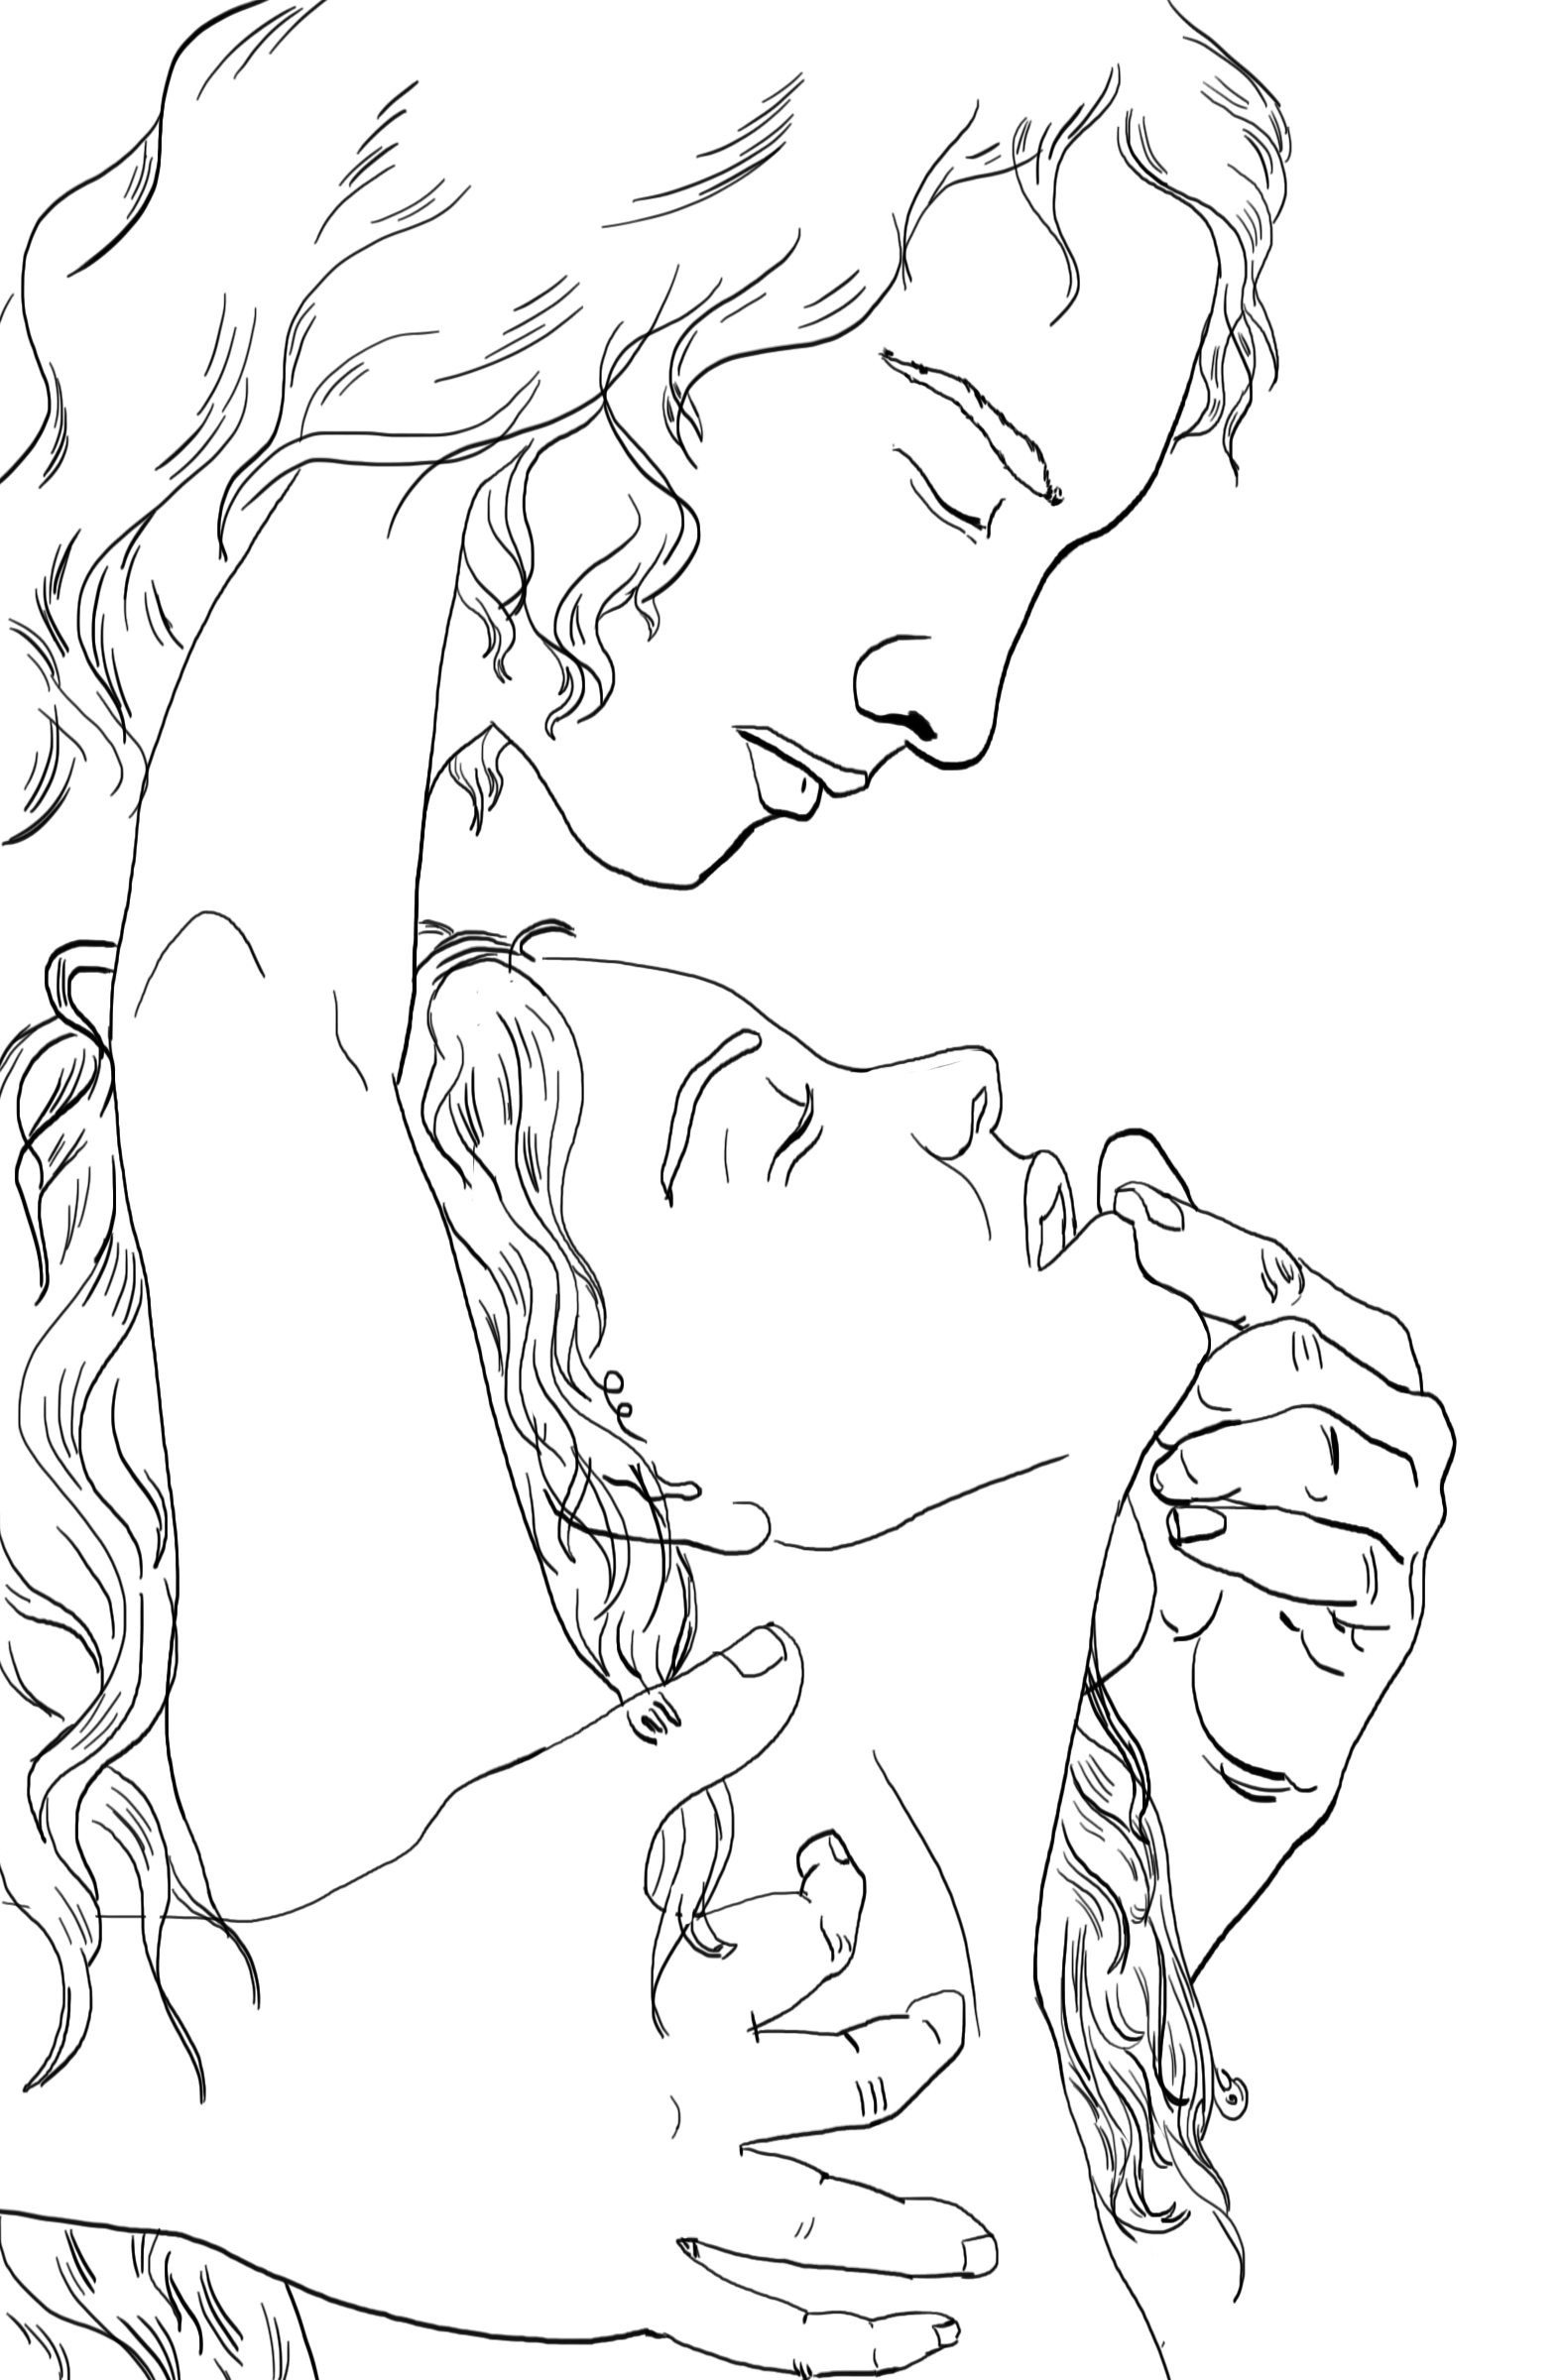 Romantic Wedding Vows_Illustration from Naked Soul Erotic Love Poems